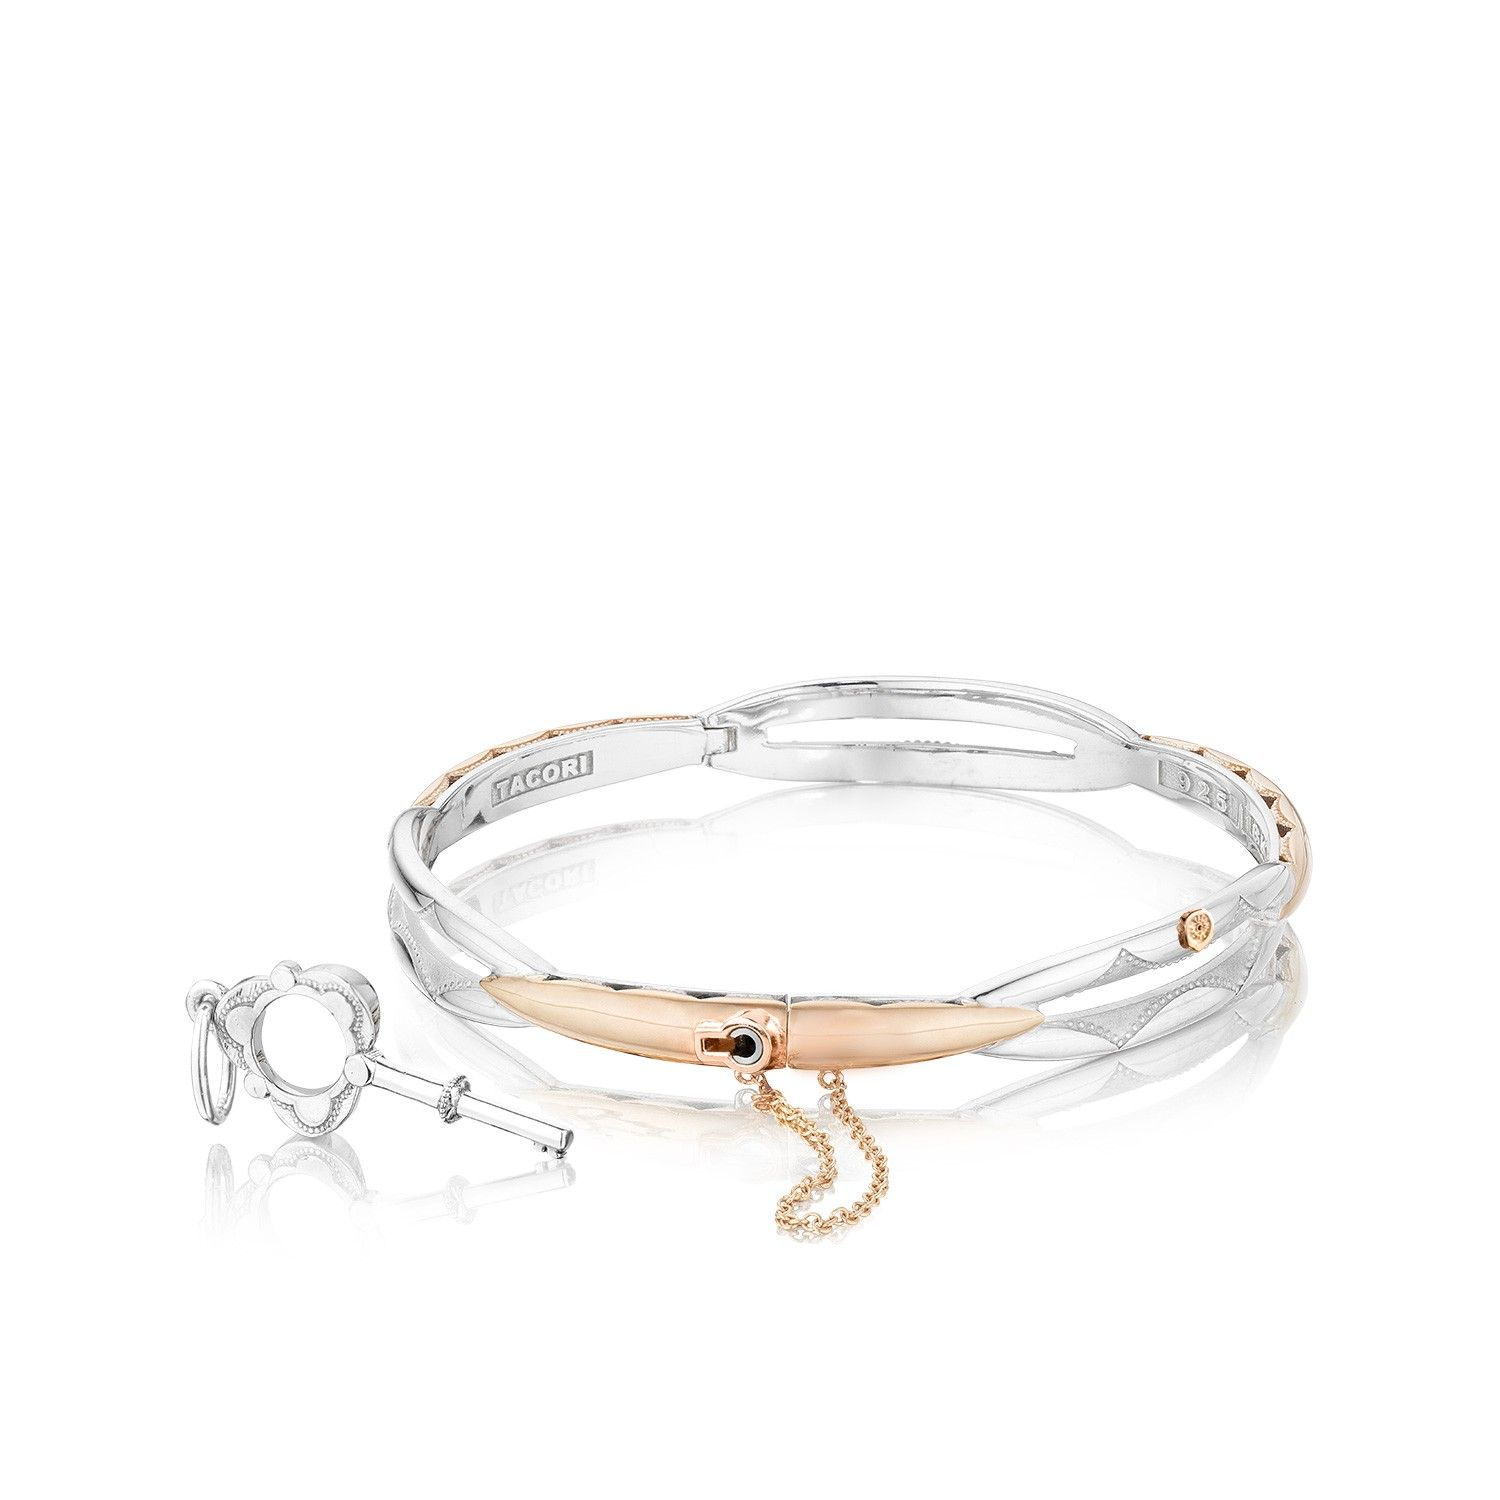 The Promise Bracelet Must Be Locked And Unlocked With A Tacori Key Which Symbolizes